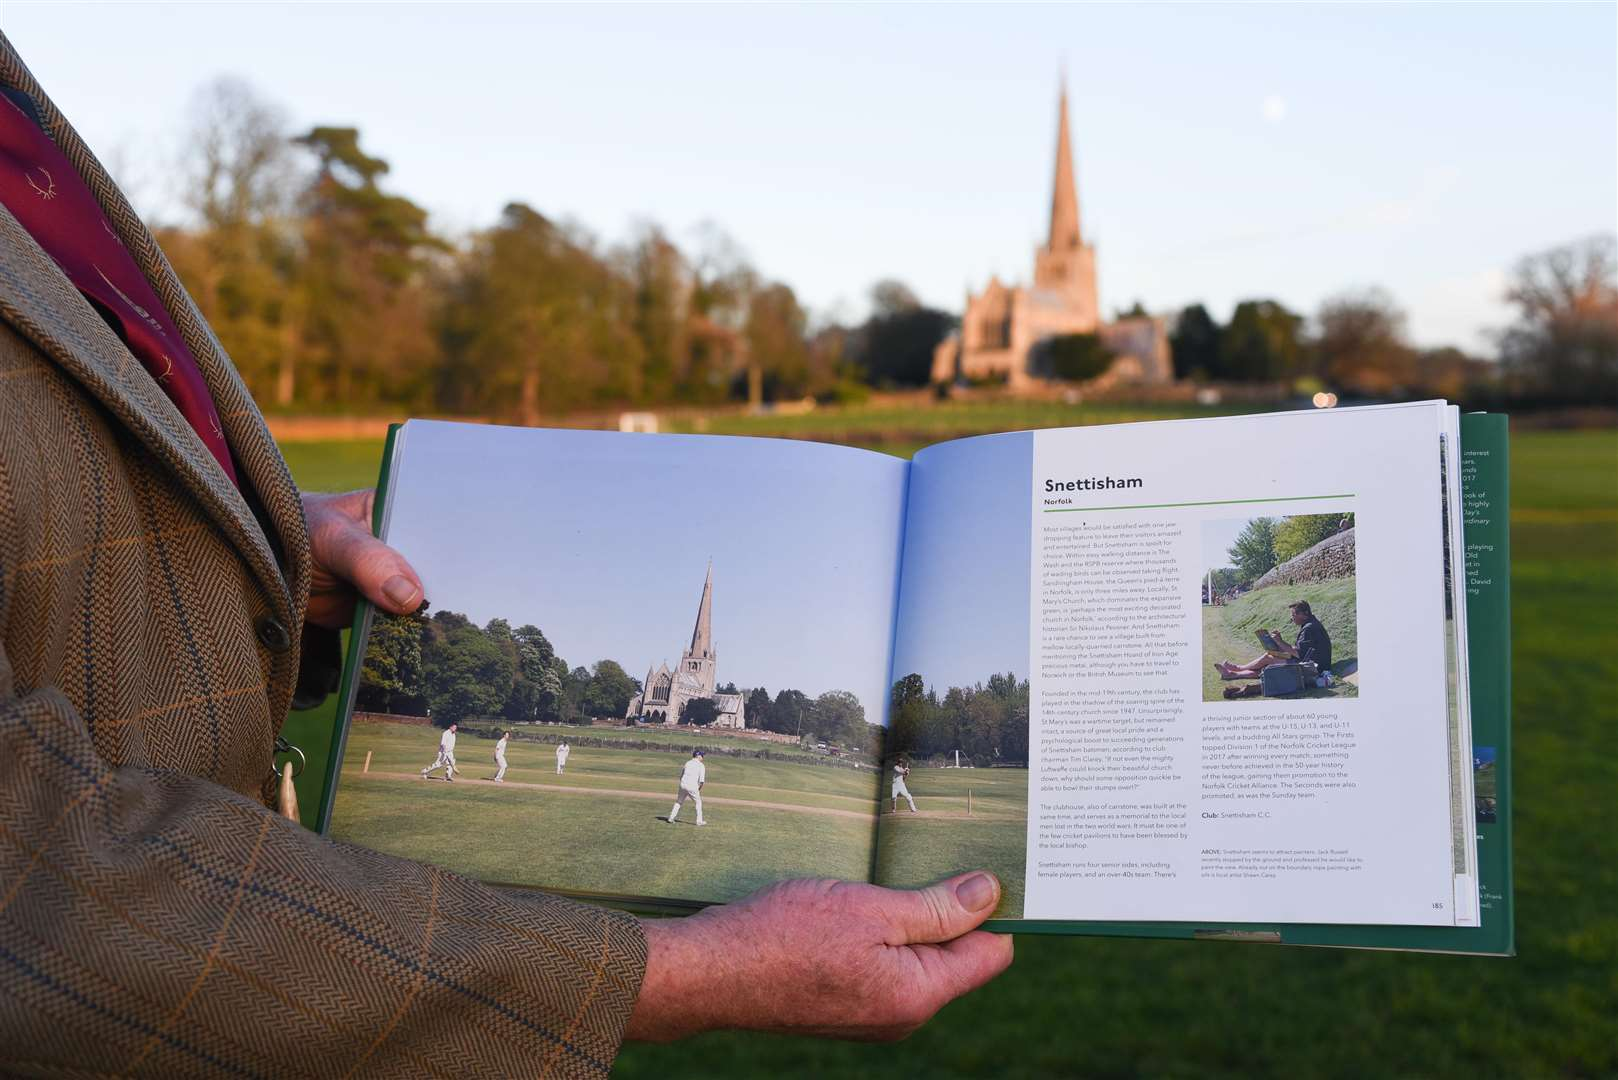 Snettisham Cricket Club has been included in a book called 'Remarkable Village Cricket Grounds'